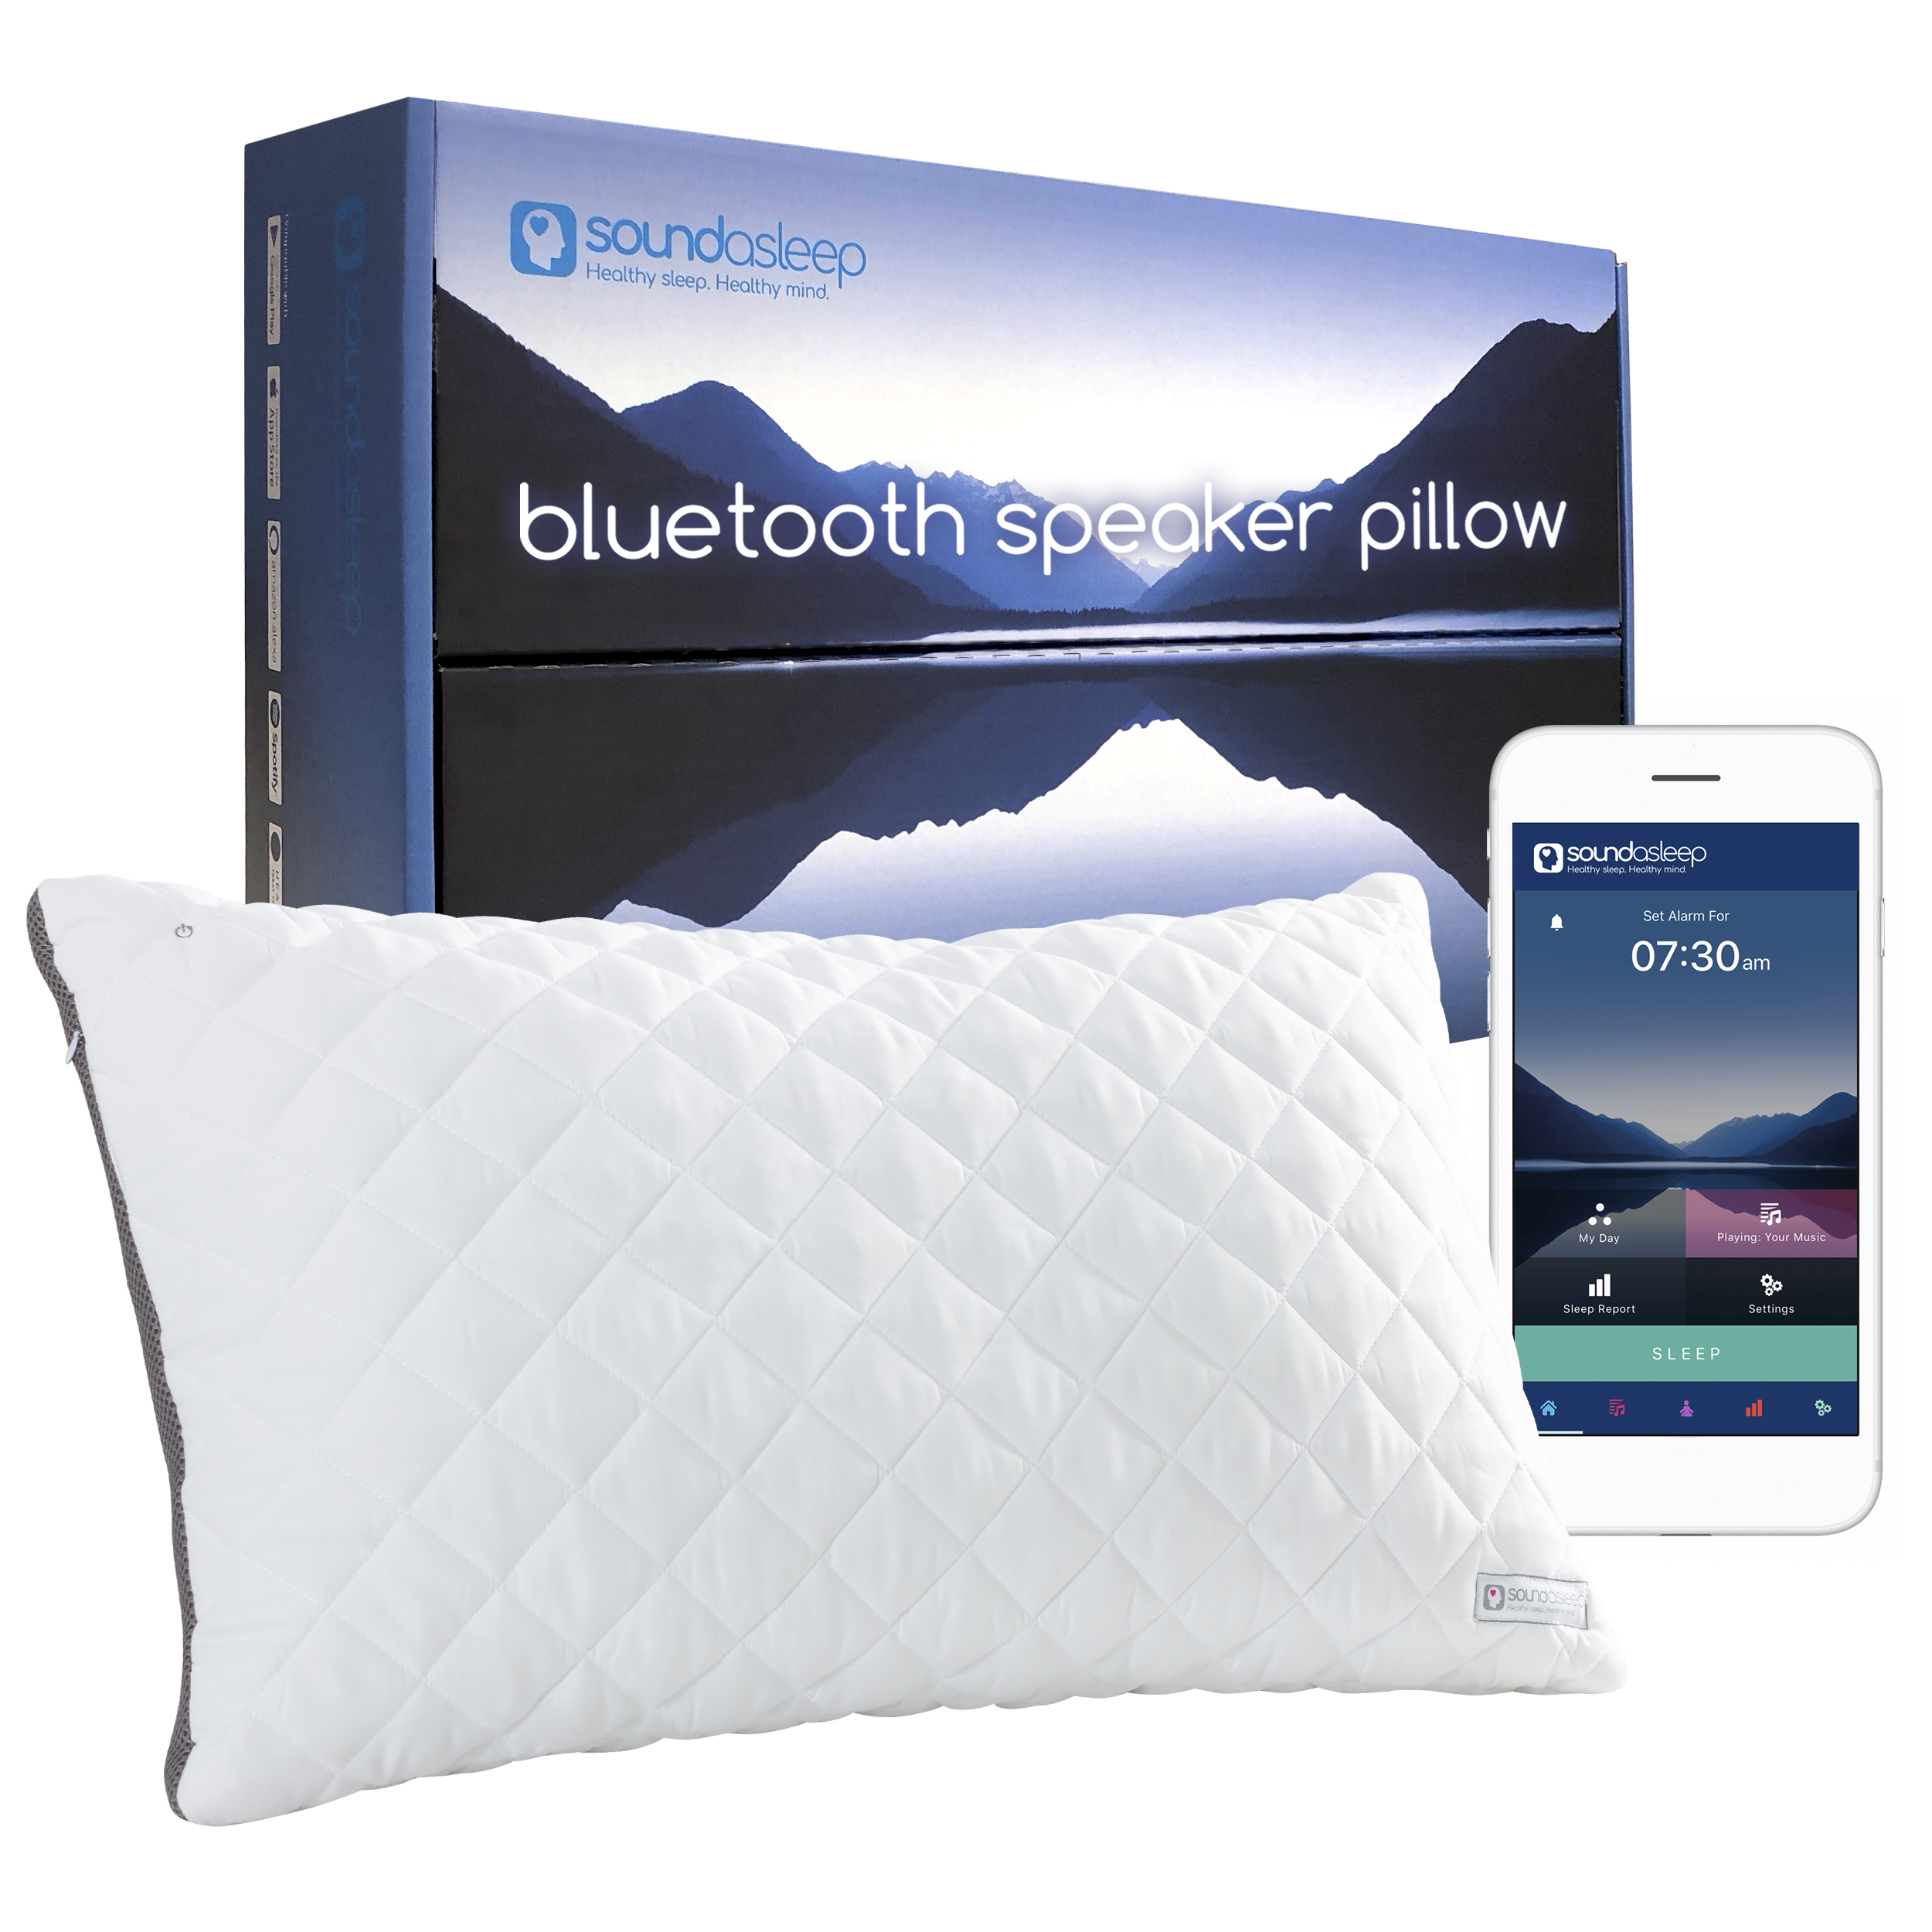 Anti-snoring pillow promises a high-tech solution to sleepless nights